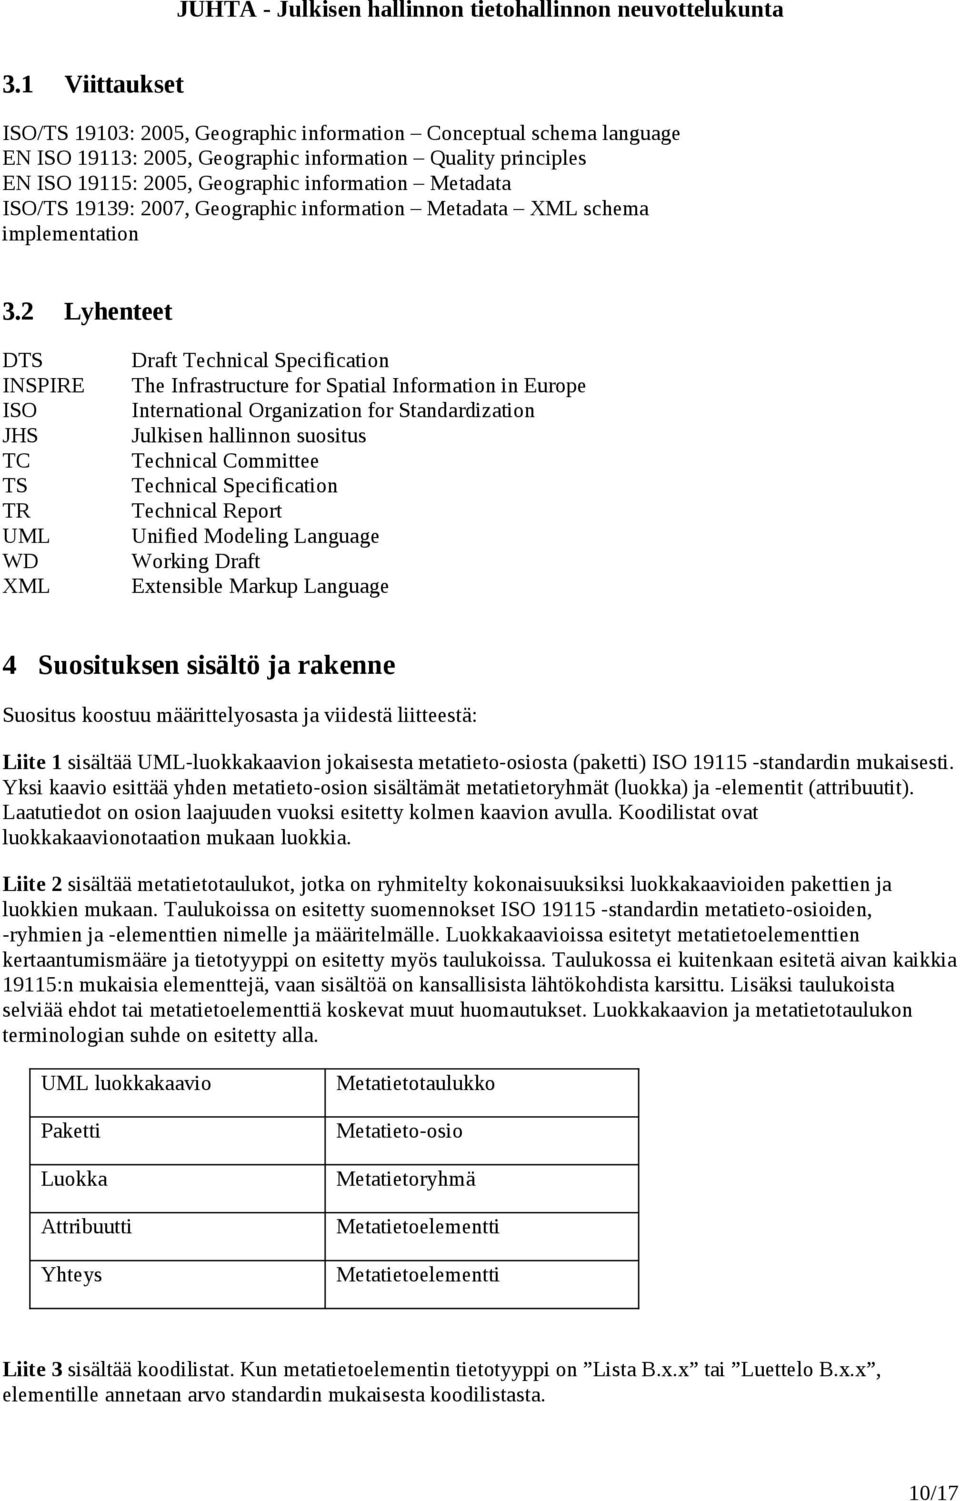 2 Lyhenteet DTS INSPIRE ISO JHS TC TS TR UML WD XML Draft Technical Specification The Infrastructure for Spatial Information in Europe International Organization for Standardization Julkisen